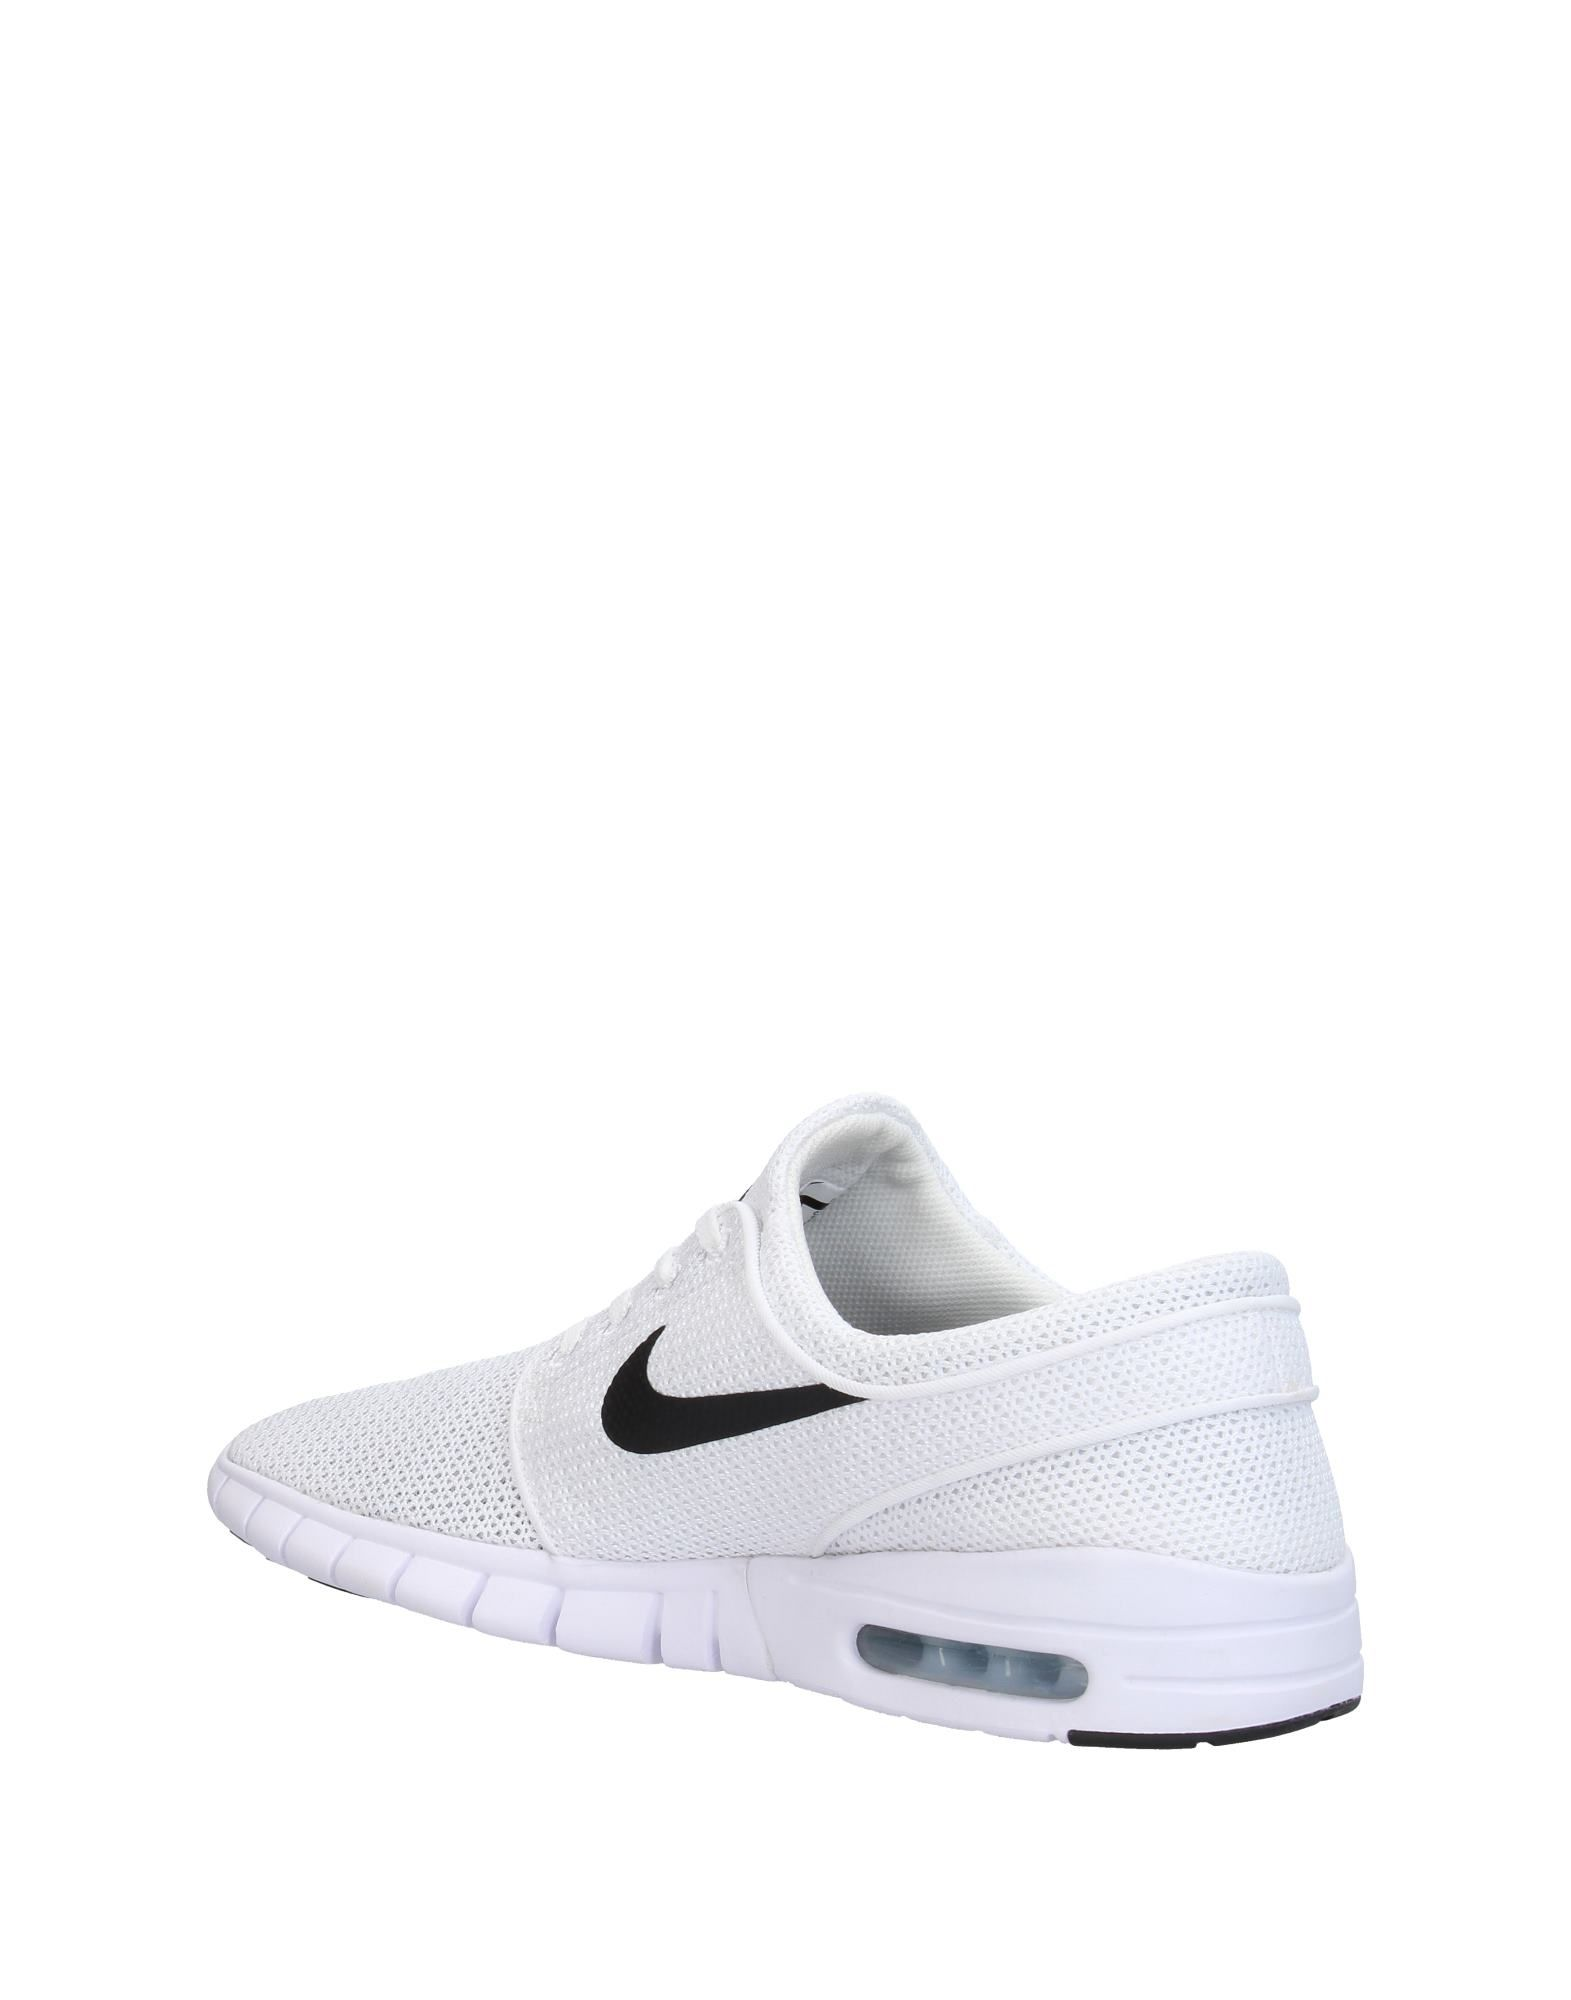 Sneakers Nike Sb Collection Homme - Sneakers Nike Sb Collection sur